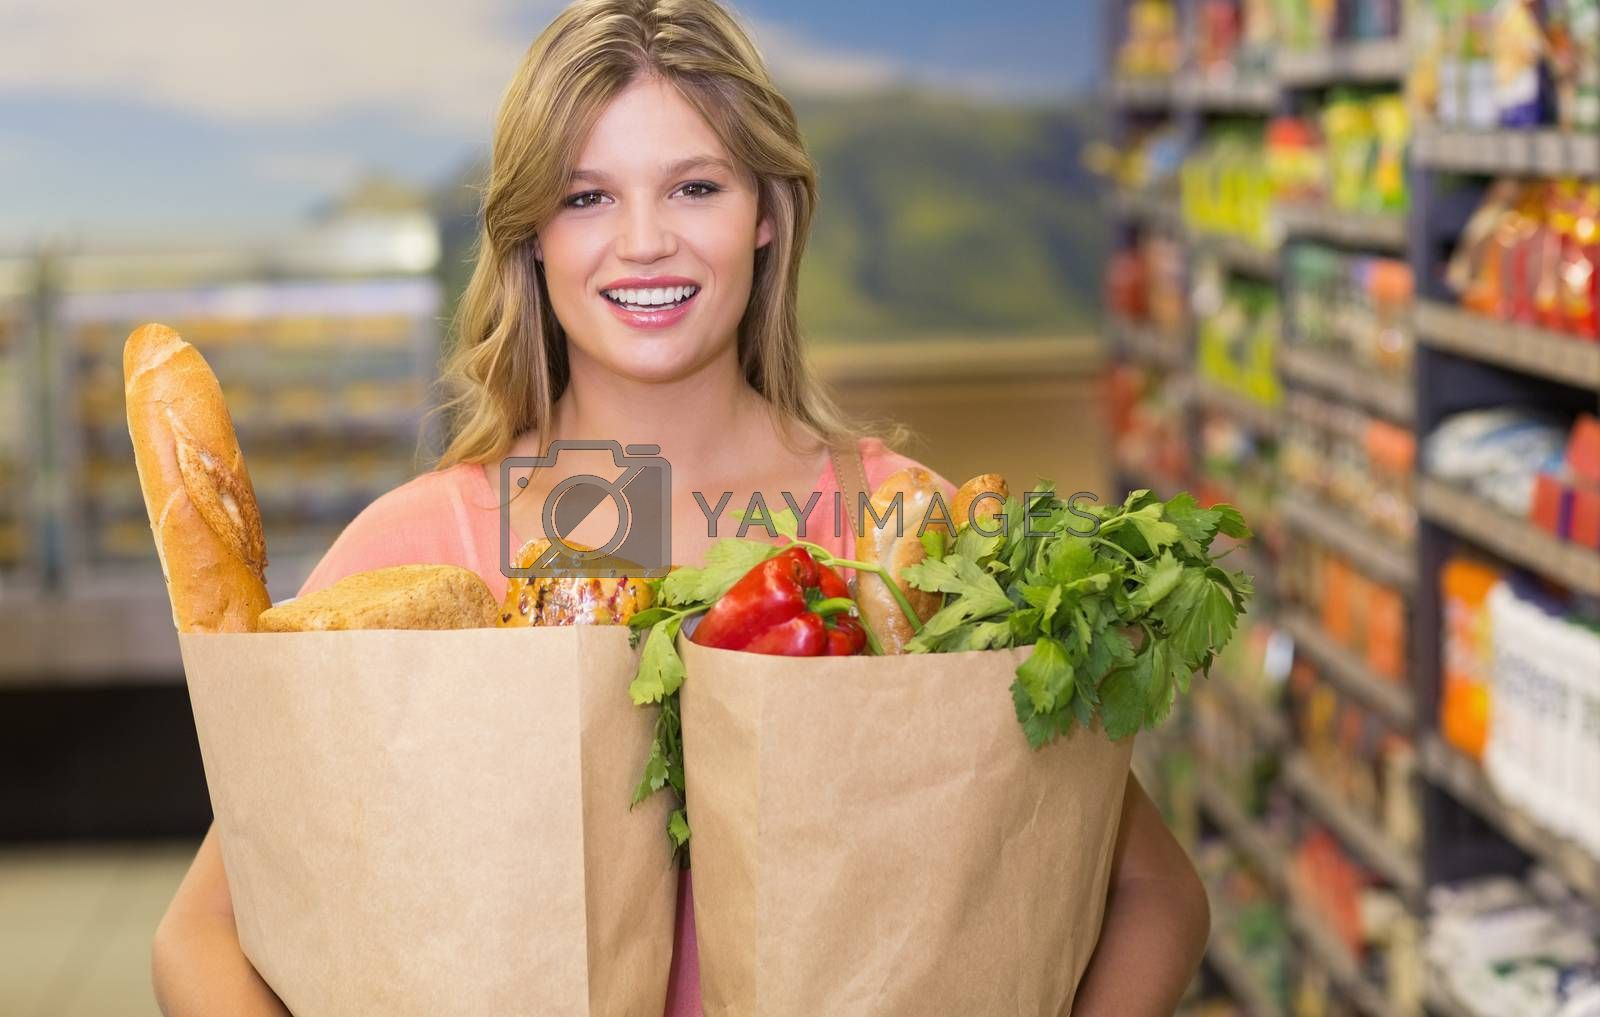 Royalty free image of Portrait of pretty blonde woman buying food products  by Wavebreakmedia